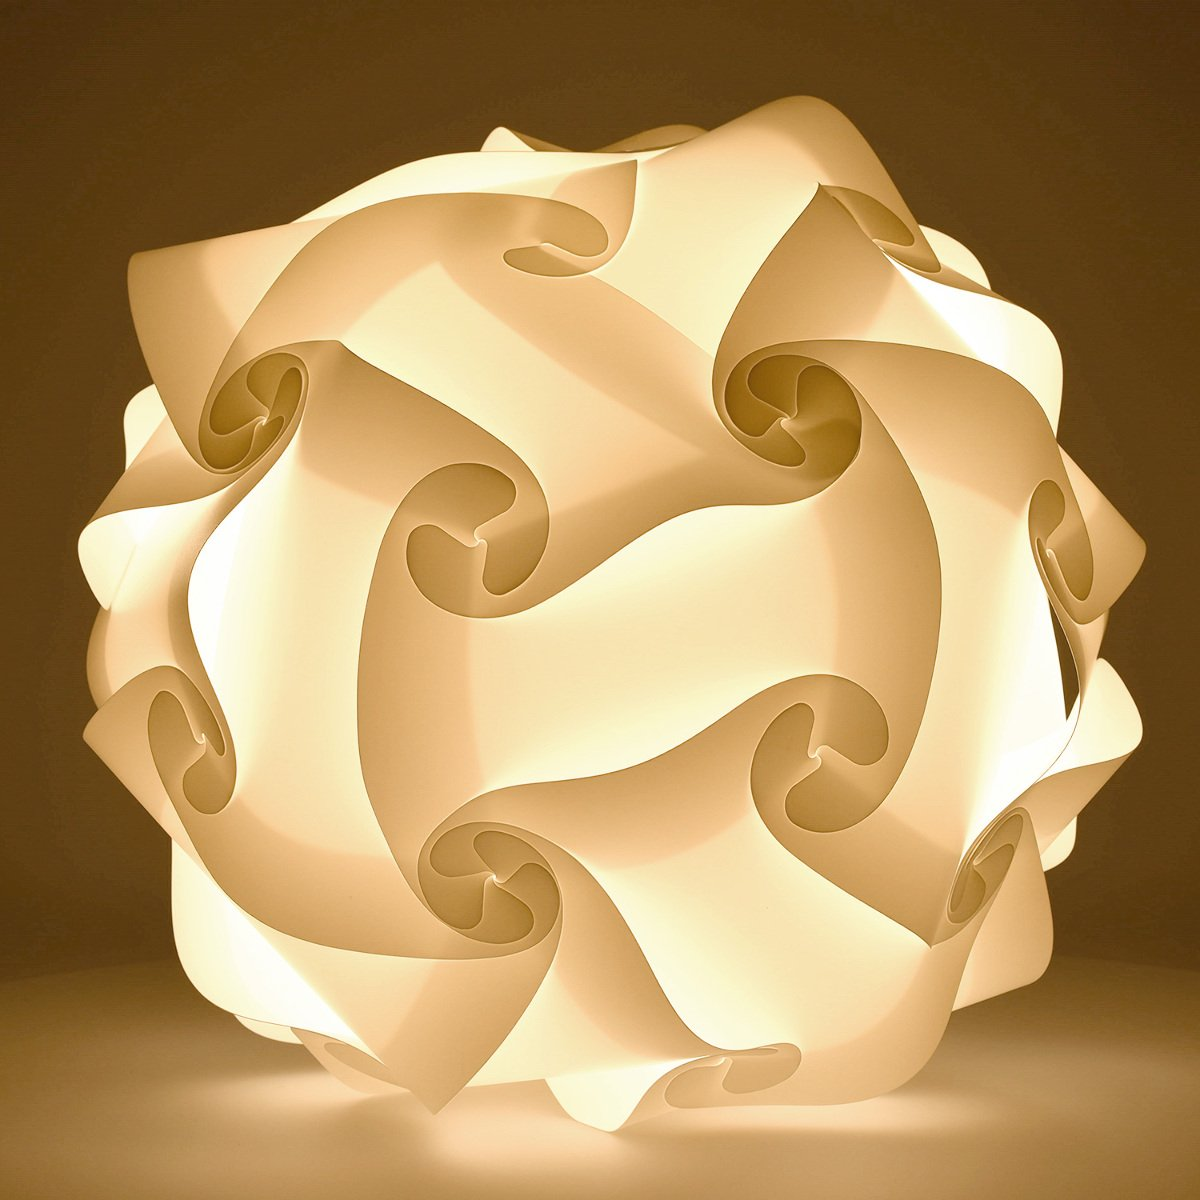 Kwmobile Diy Puzzle Lamp Shade Modern Iq Jigsaw Light In 30 Pieces